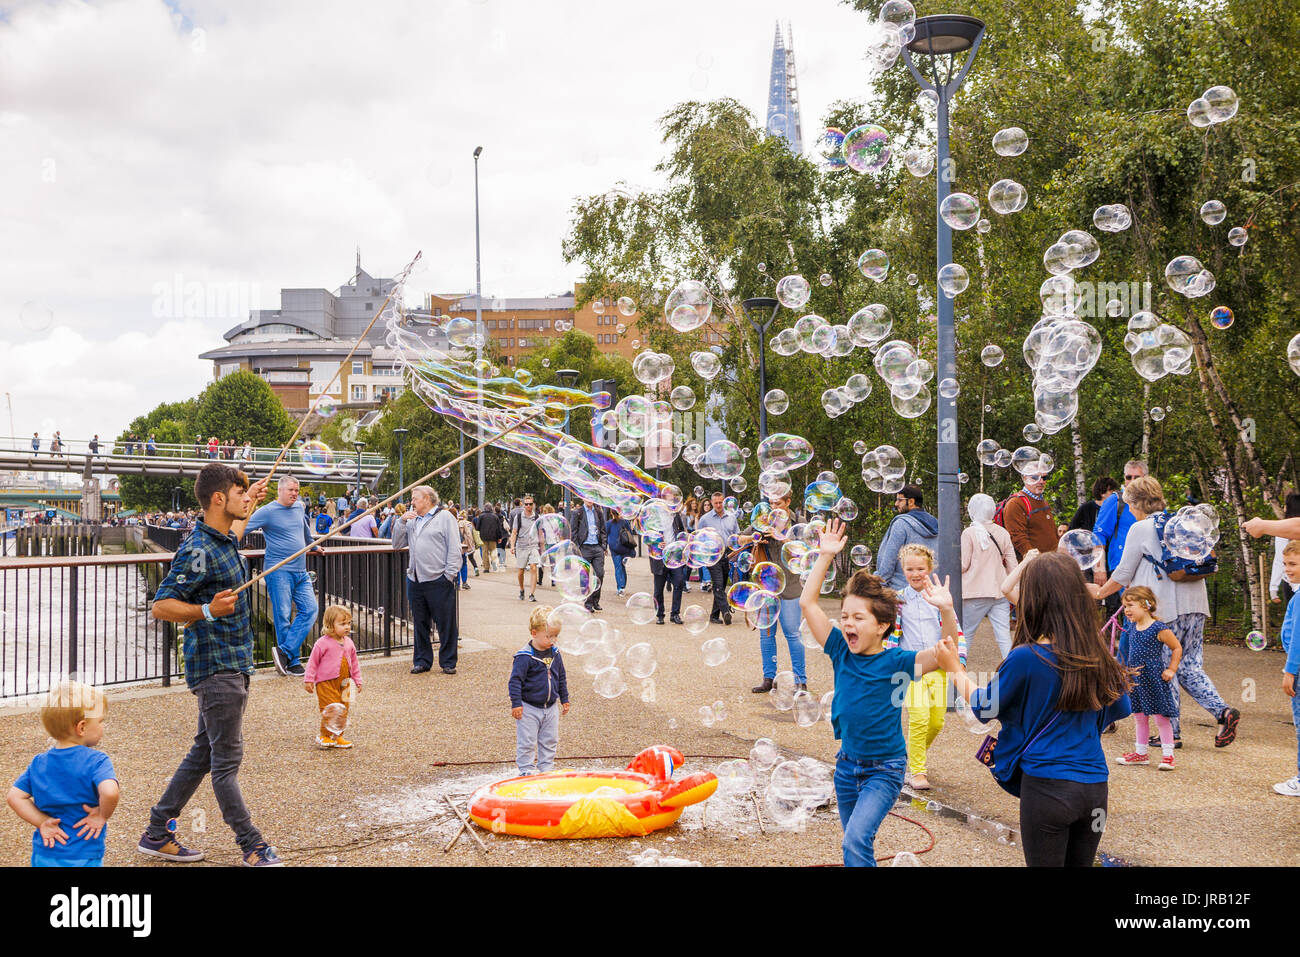 Street entertainer soliciting tips entertaining children by blowing large colourful bubbles, Bankside, Embankment, South Bank, London SE1, UK - Stock Image